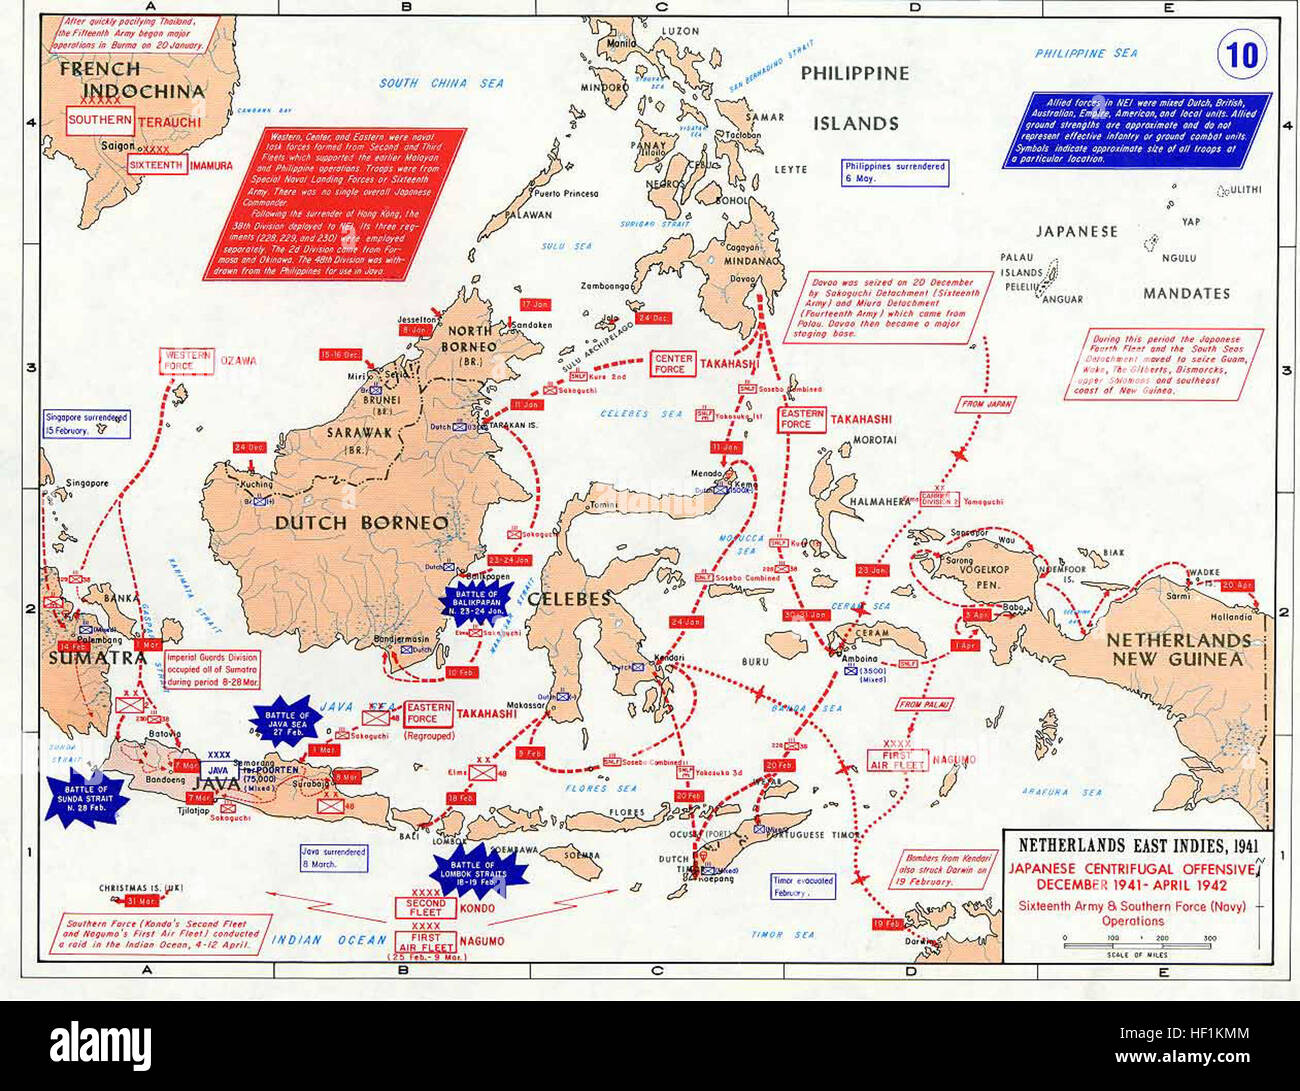 Pacific War - Dutch East Indies 1941-42 - Map Stock Photo ...